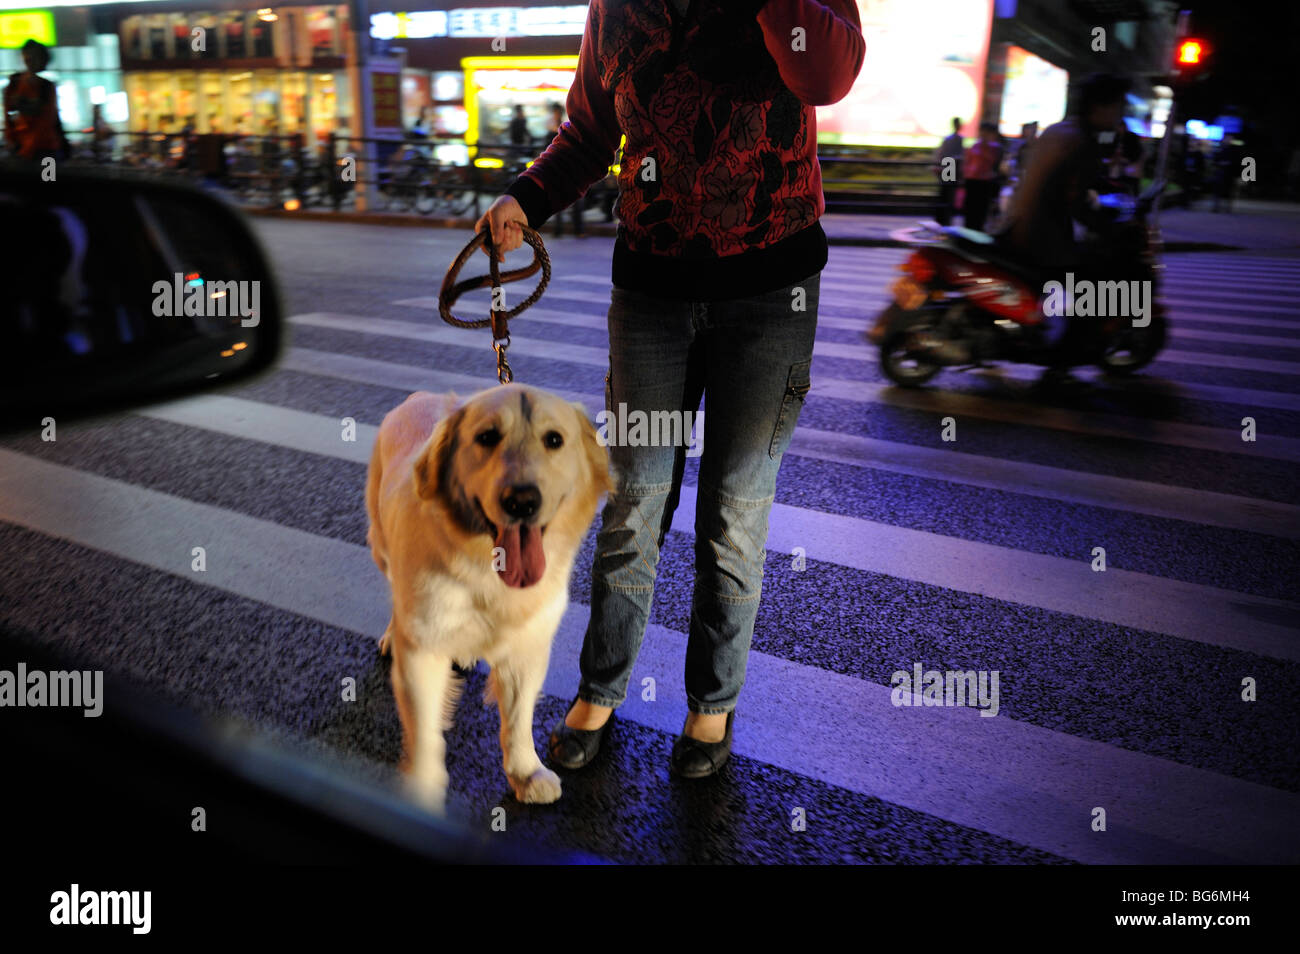 A guide dog in Shanghai, China.19-Oct-2009 - Stock Image